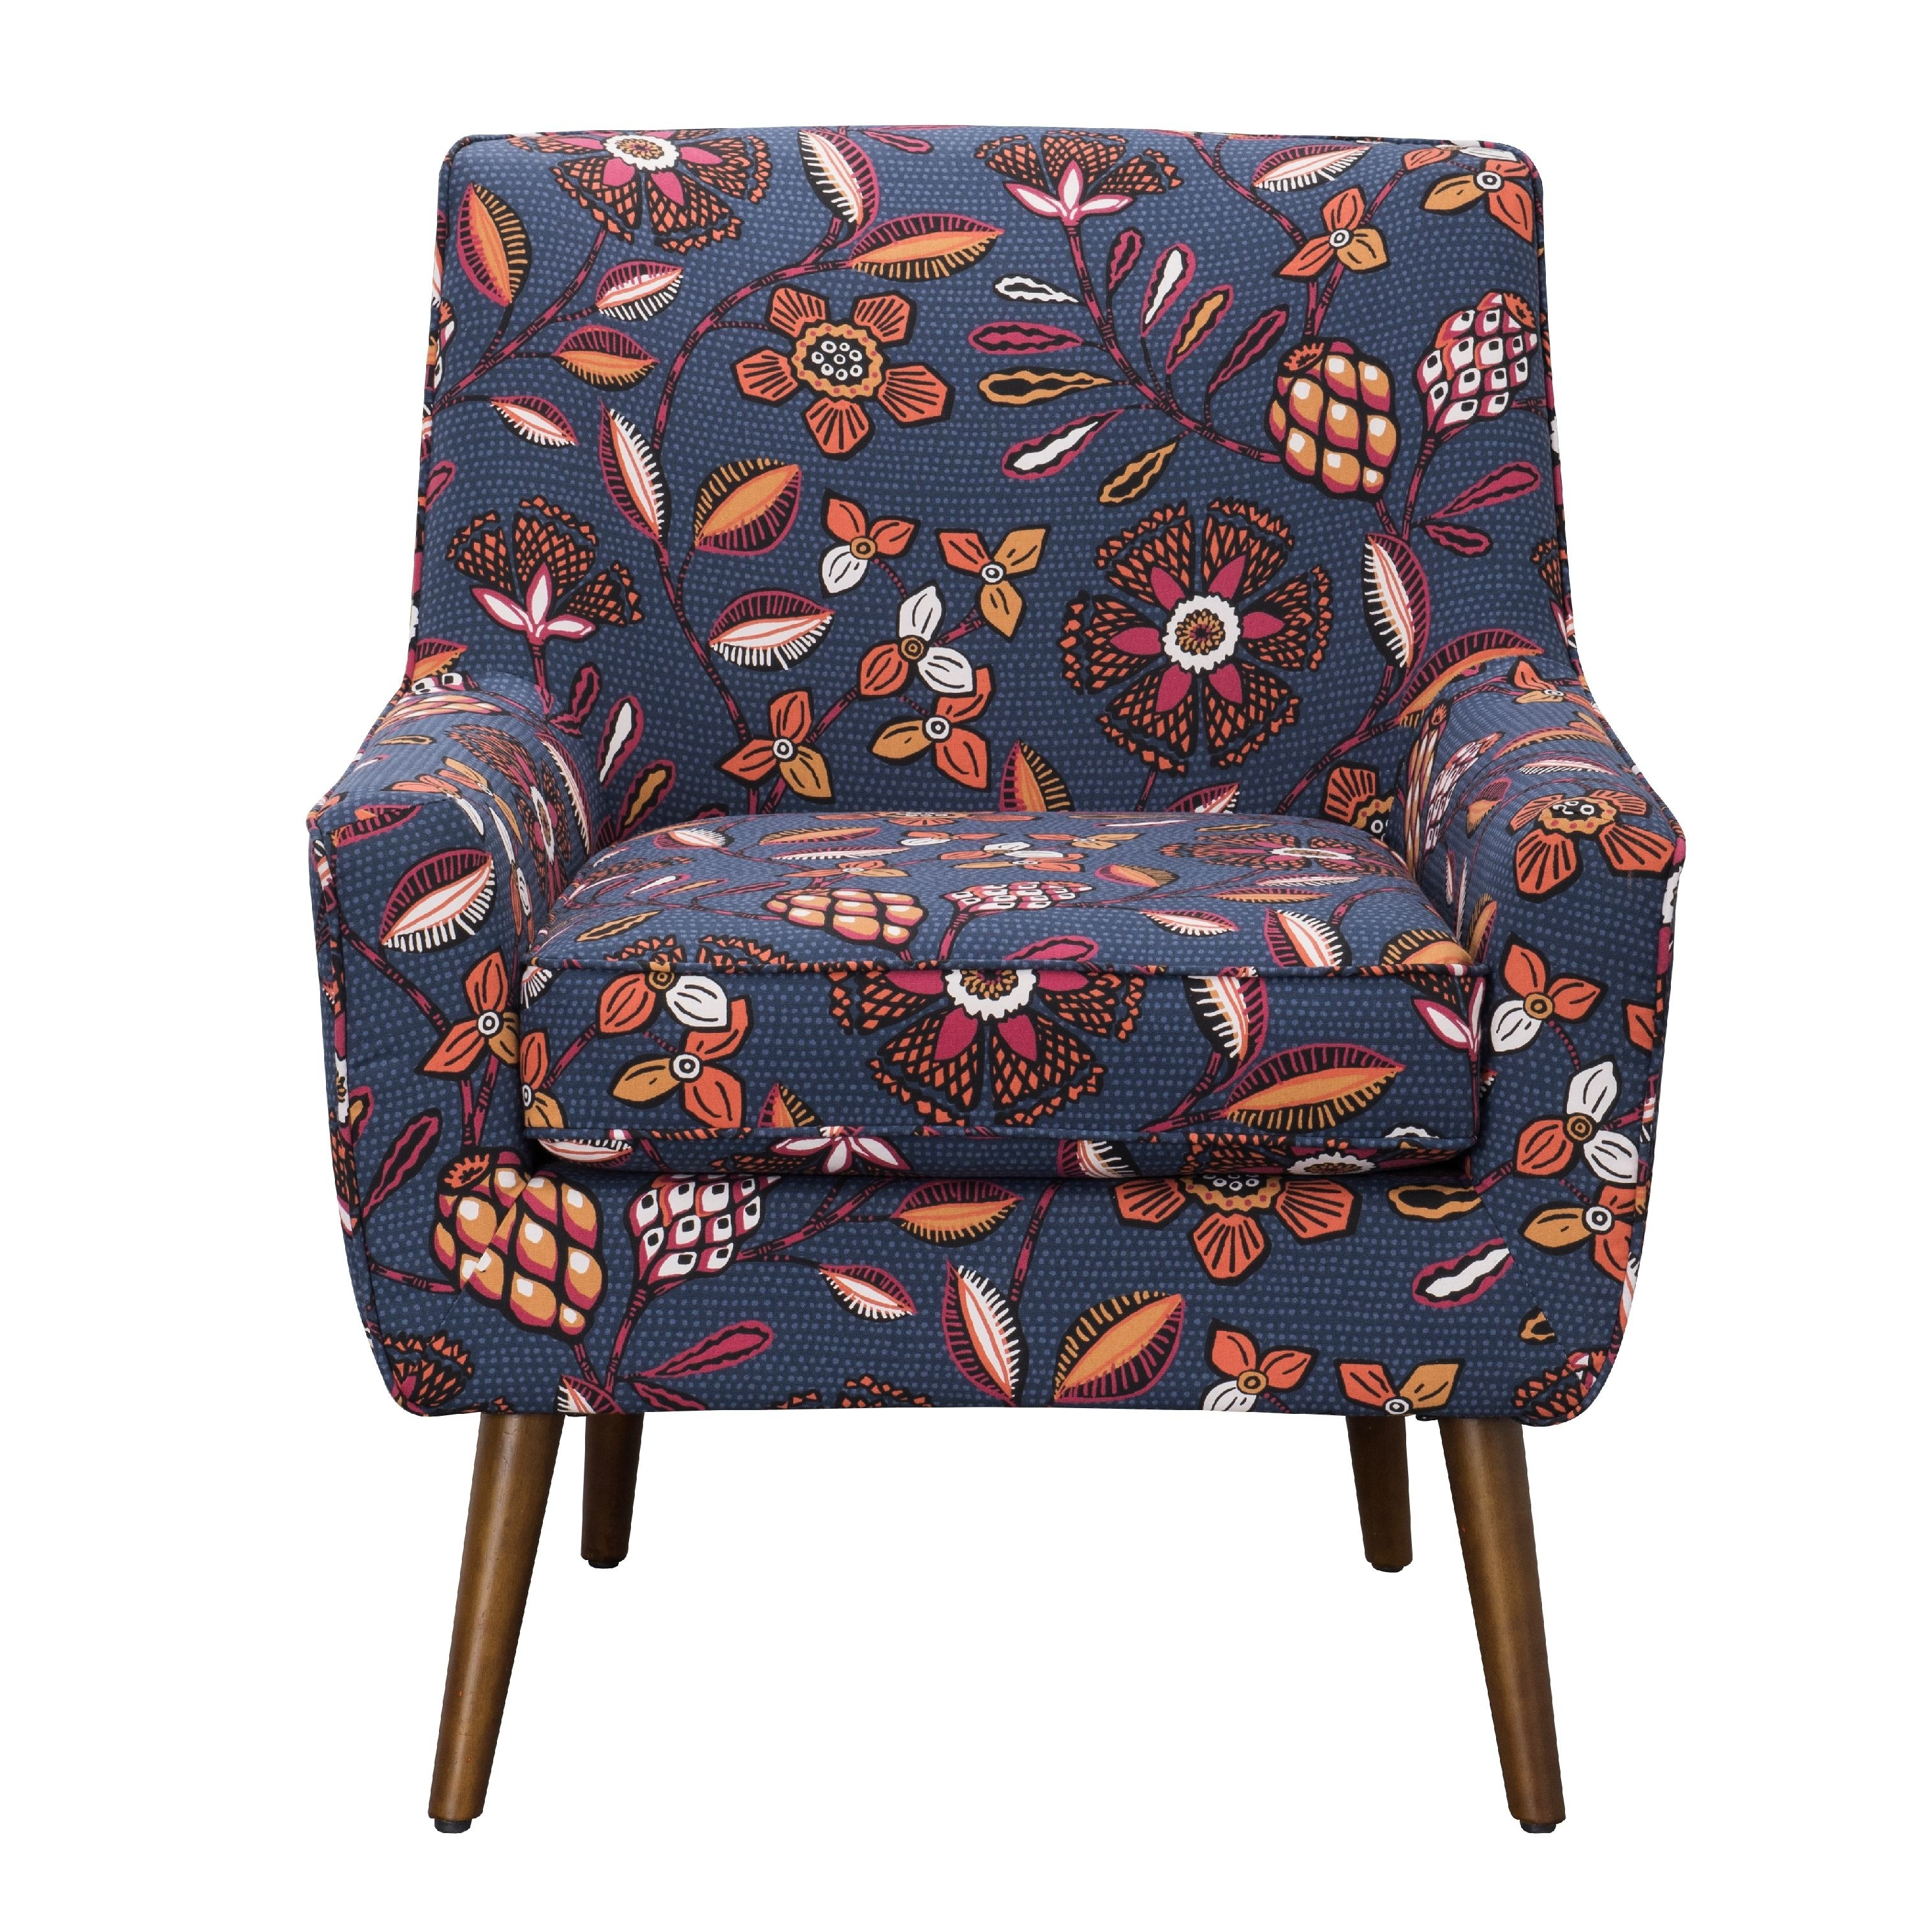 blue and floral pattern accent chair with gold hairpin legs